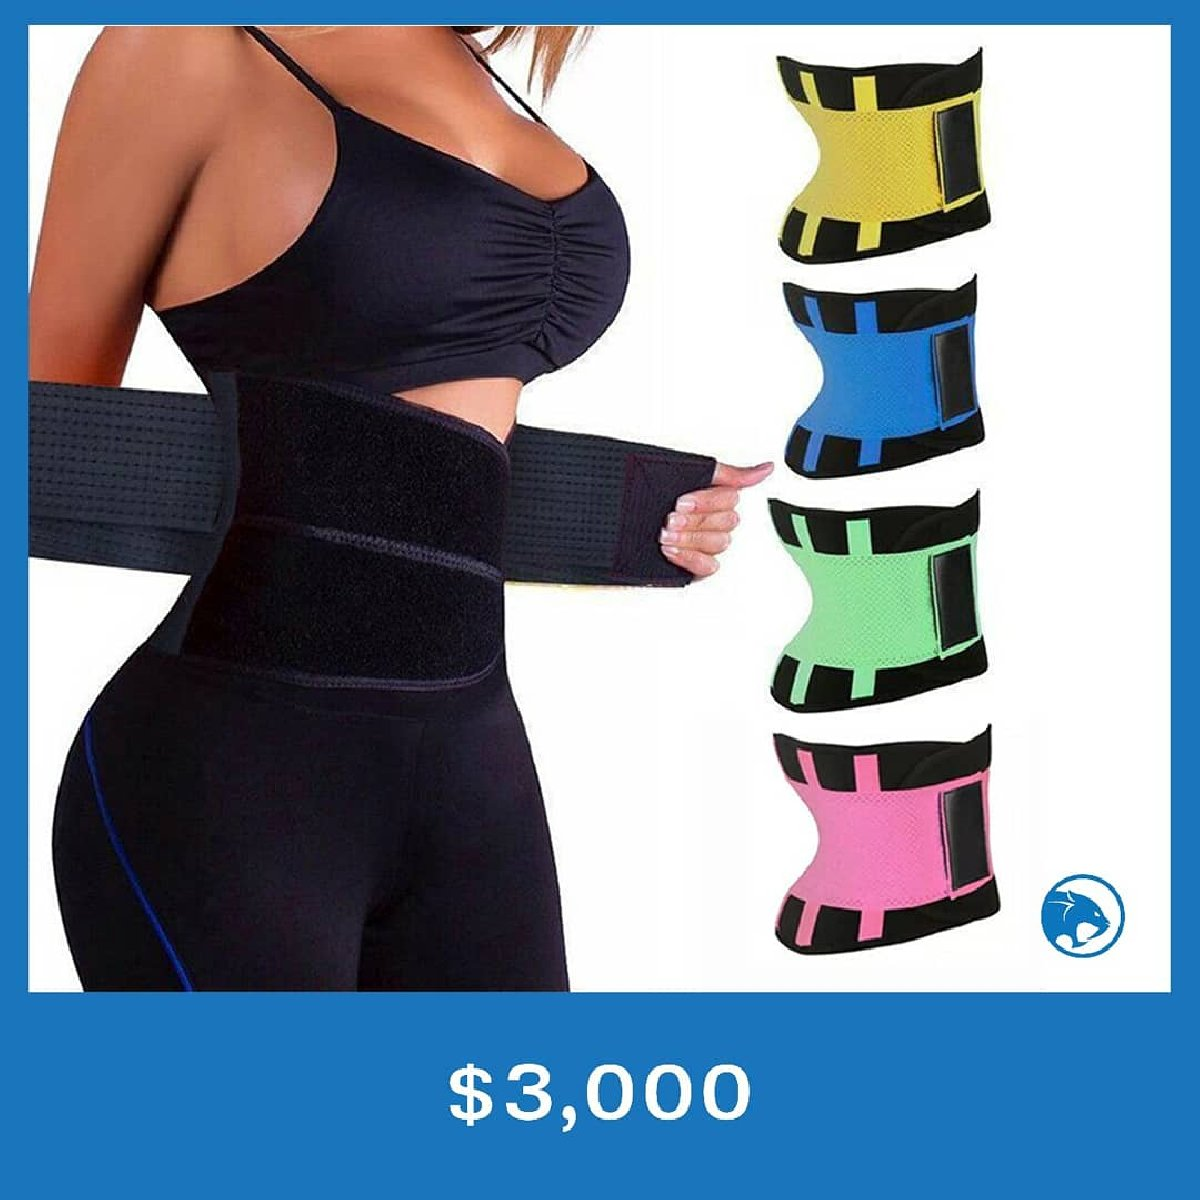 4125e1a6e4 Women s Fitness Waist Cincher Waist Trimmer Corset for sale in ...